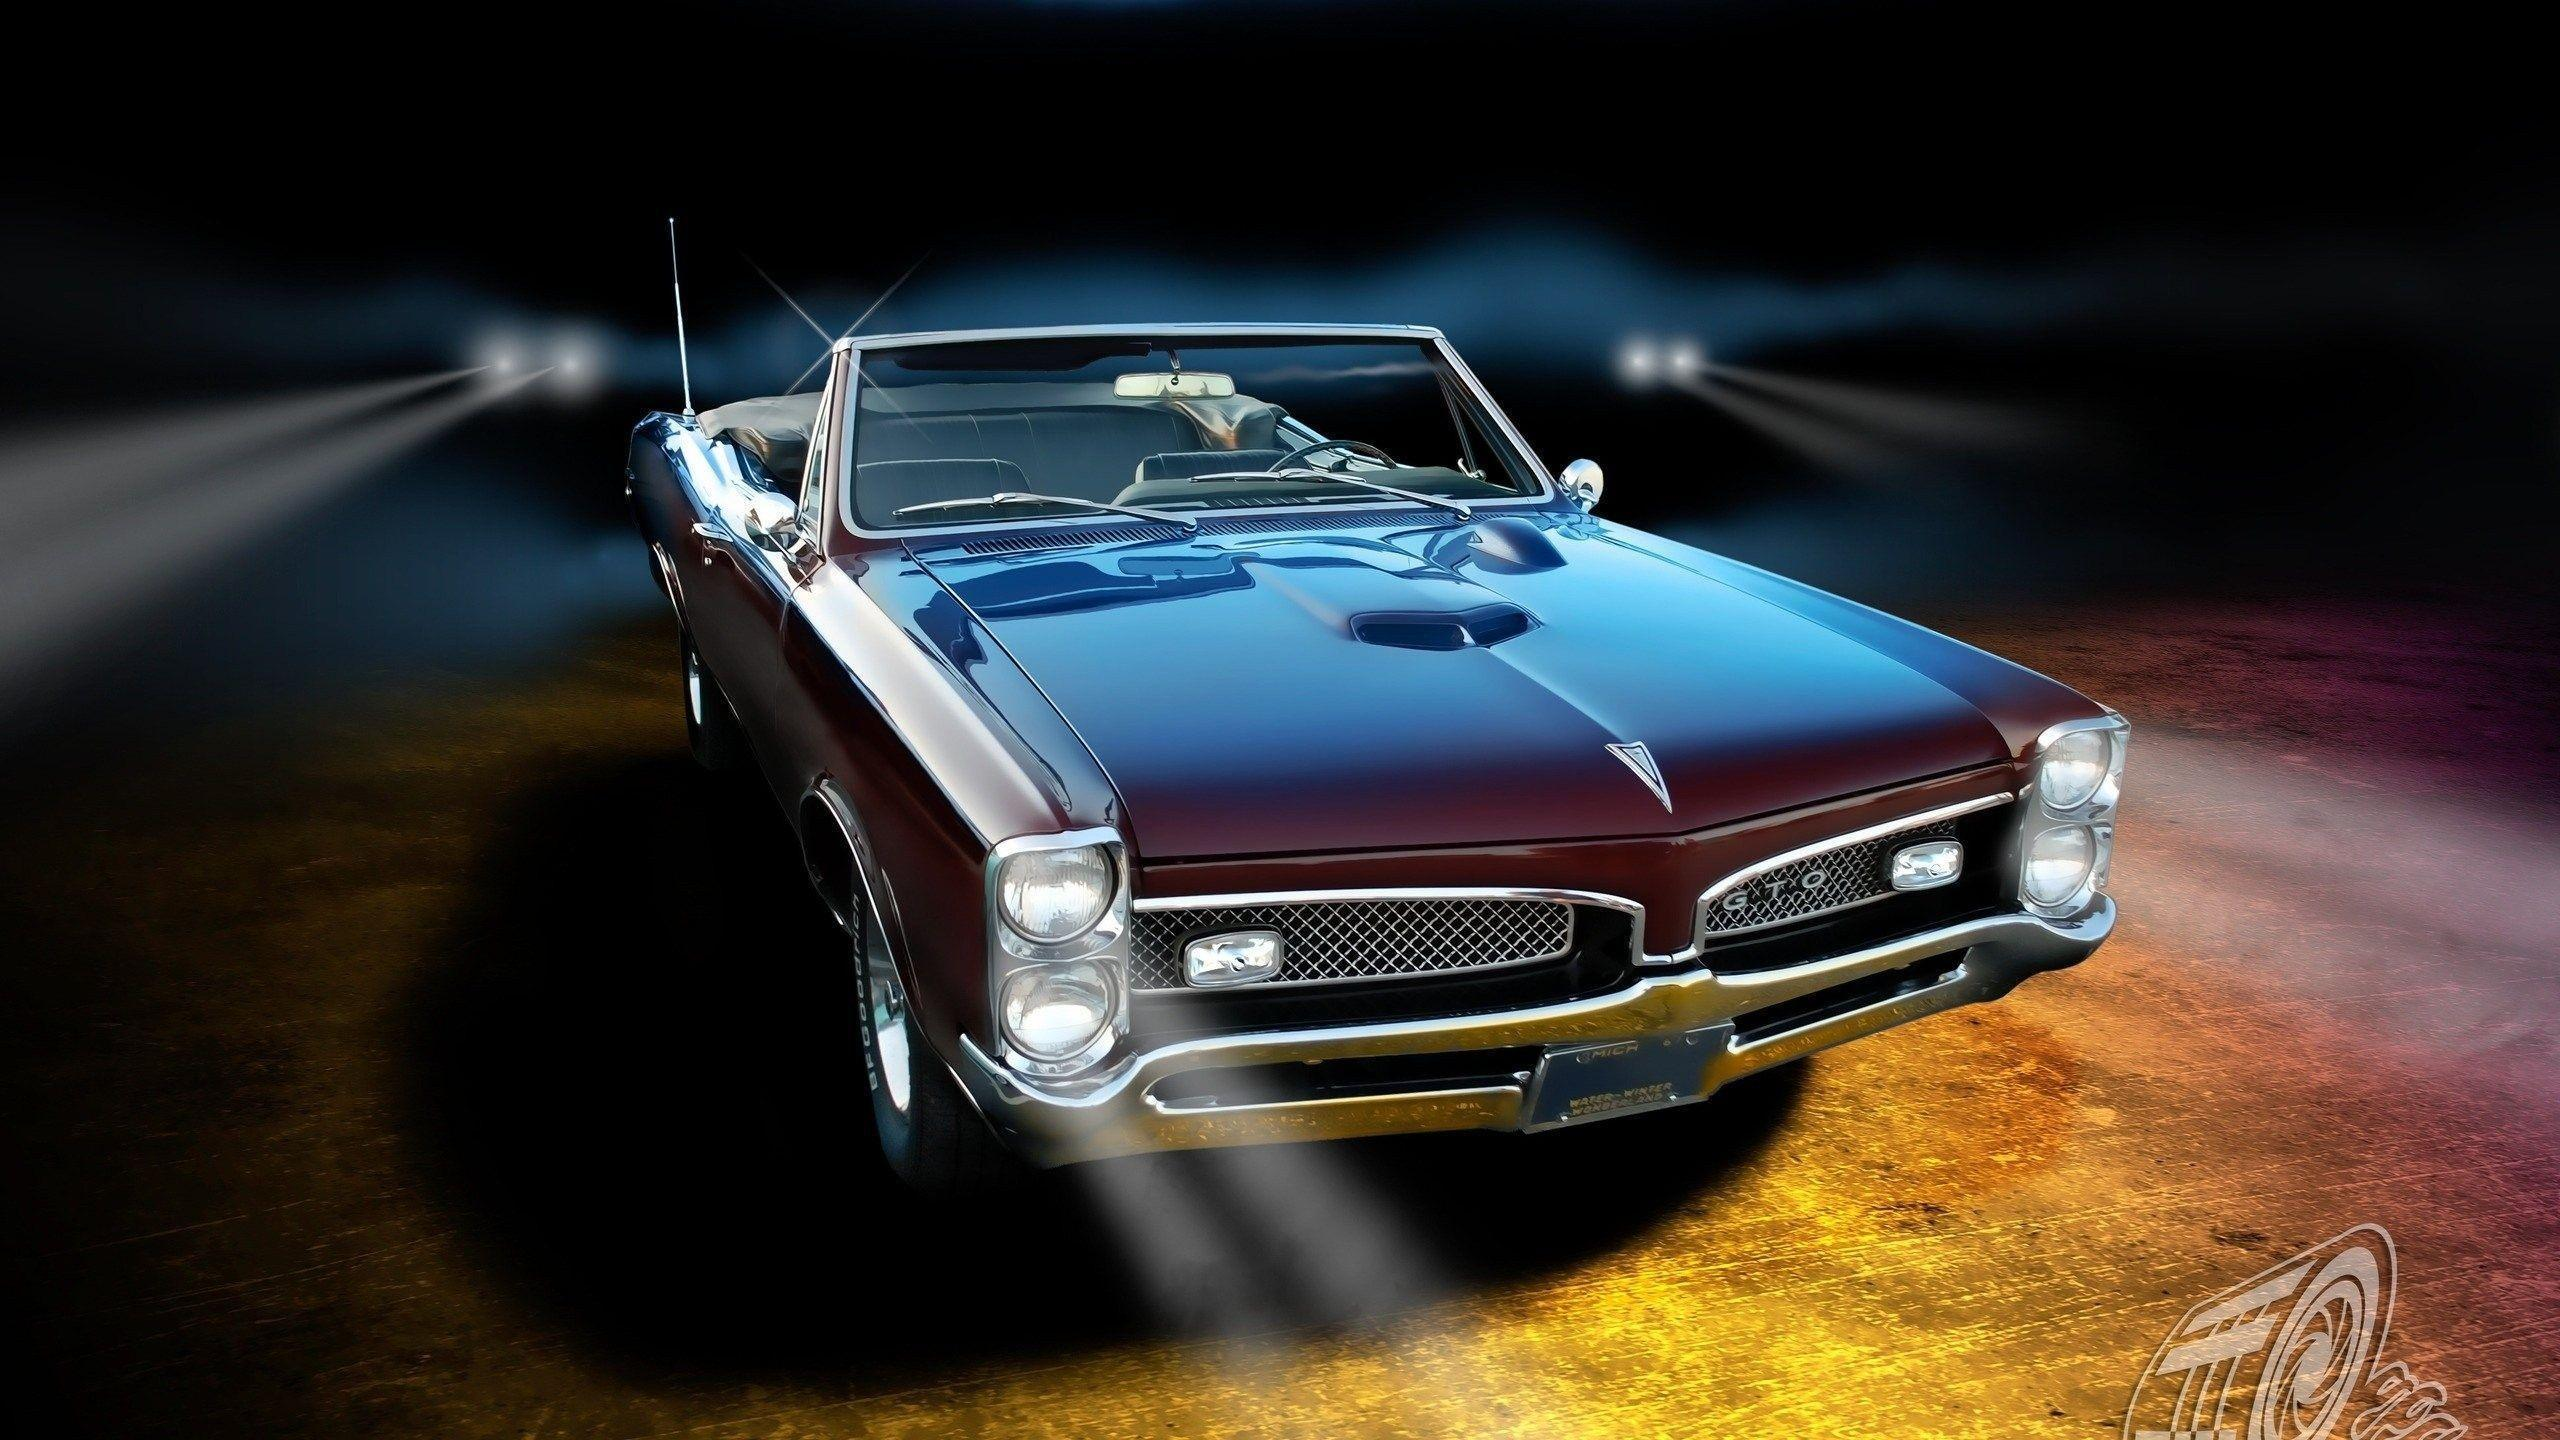 Old School Muscle Cars Wallpapers Top Free Old School Muscle Cars